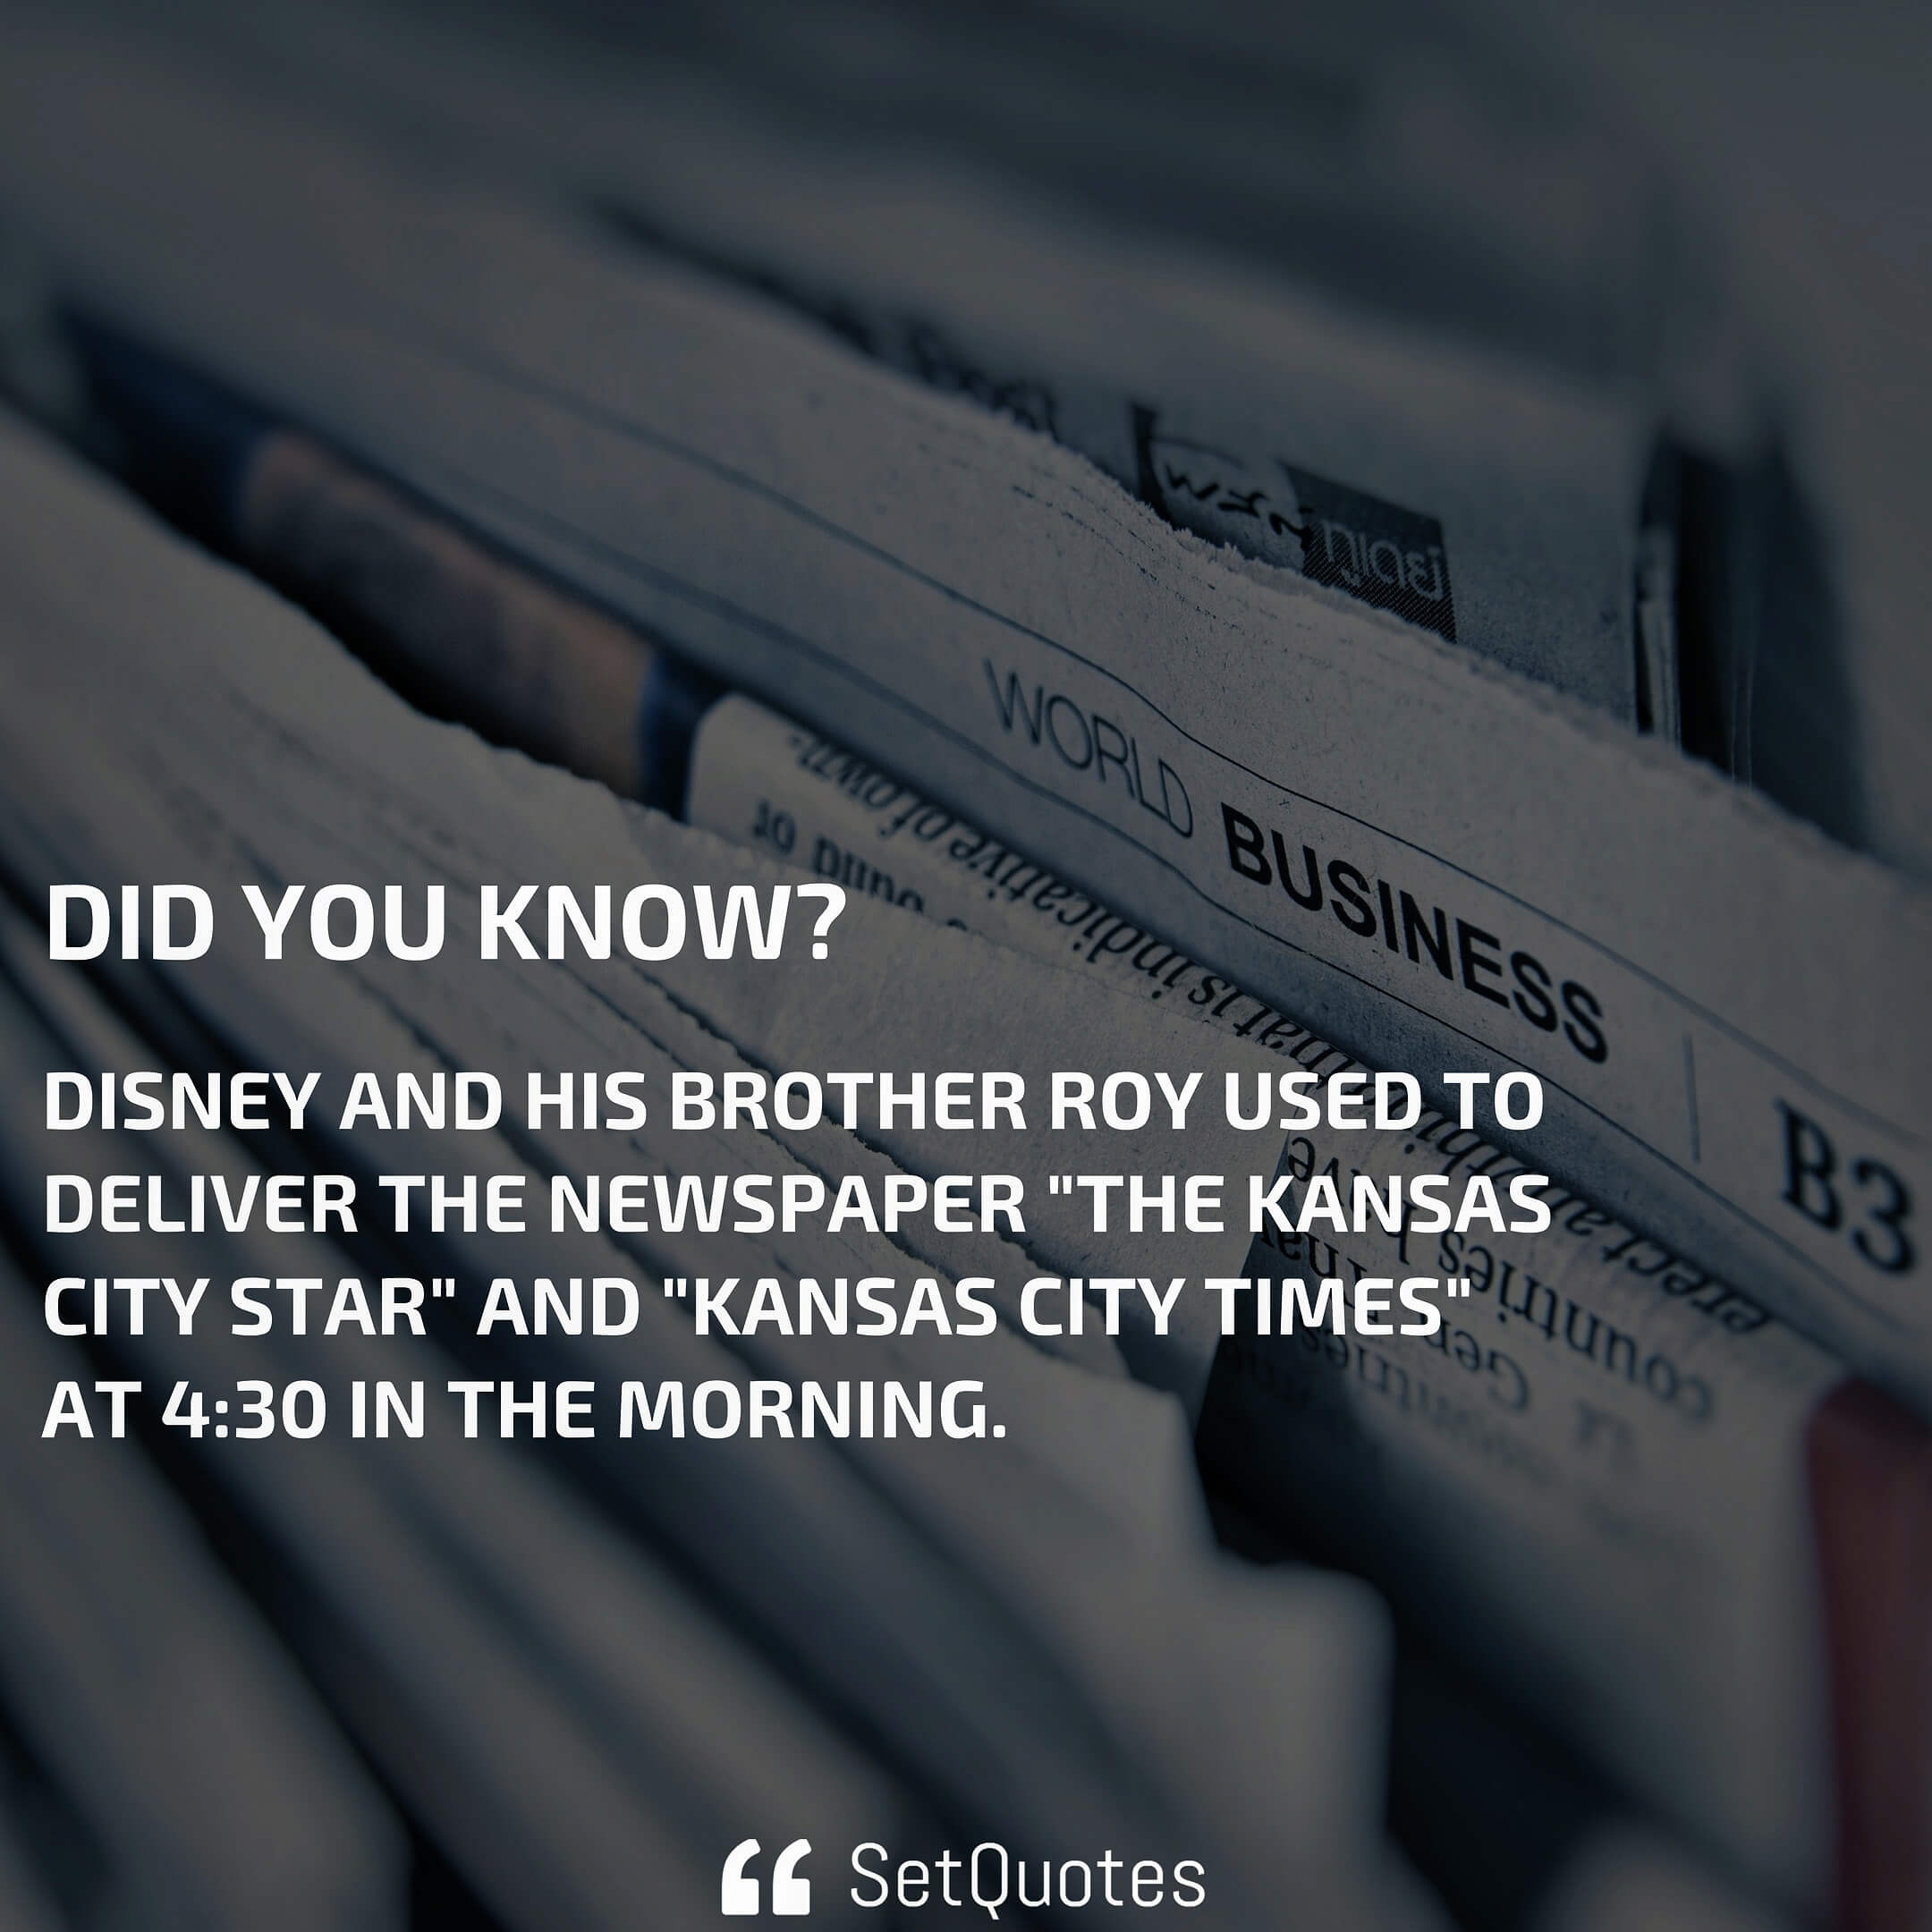 """Disney and his brother Roy used to deliver the newspaper """"The Kansas City Star"""" and """"Kansas City Times"""" at 4:30 in the morning."""